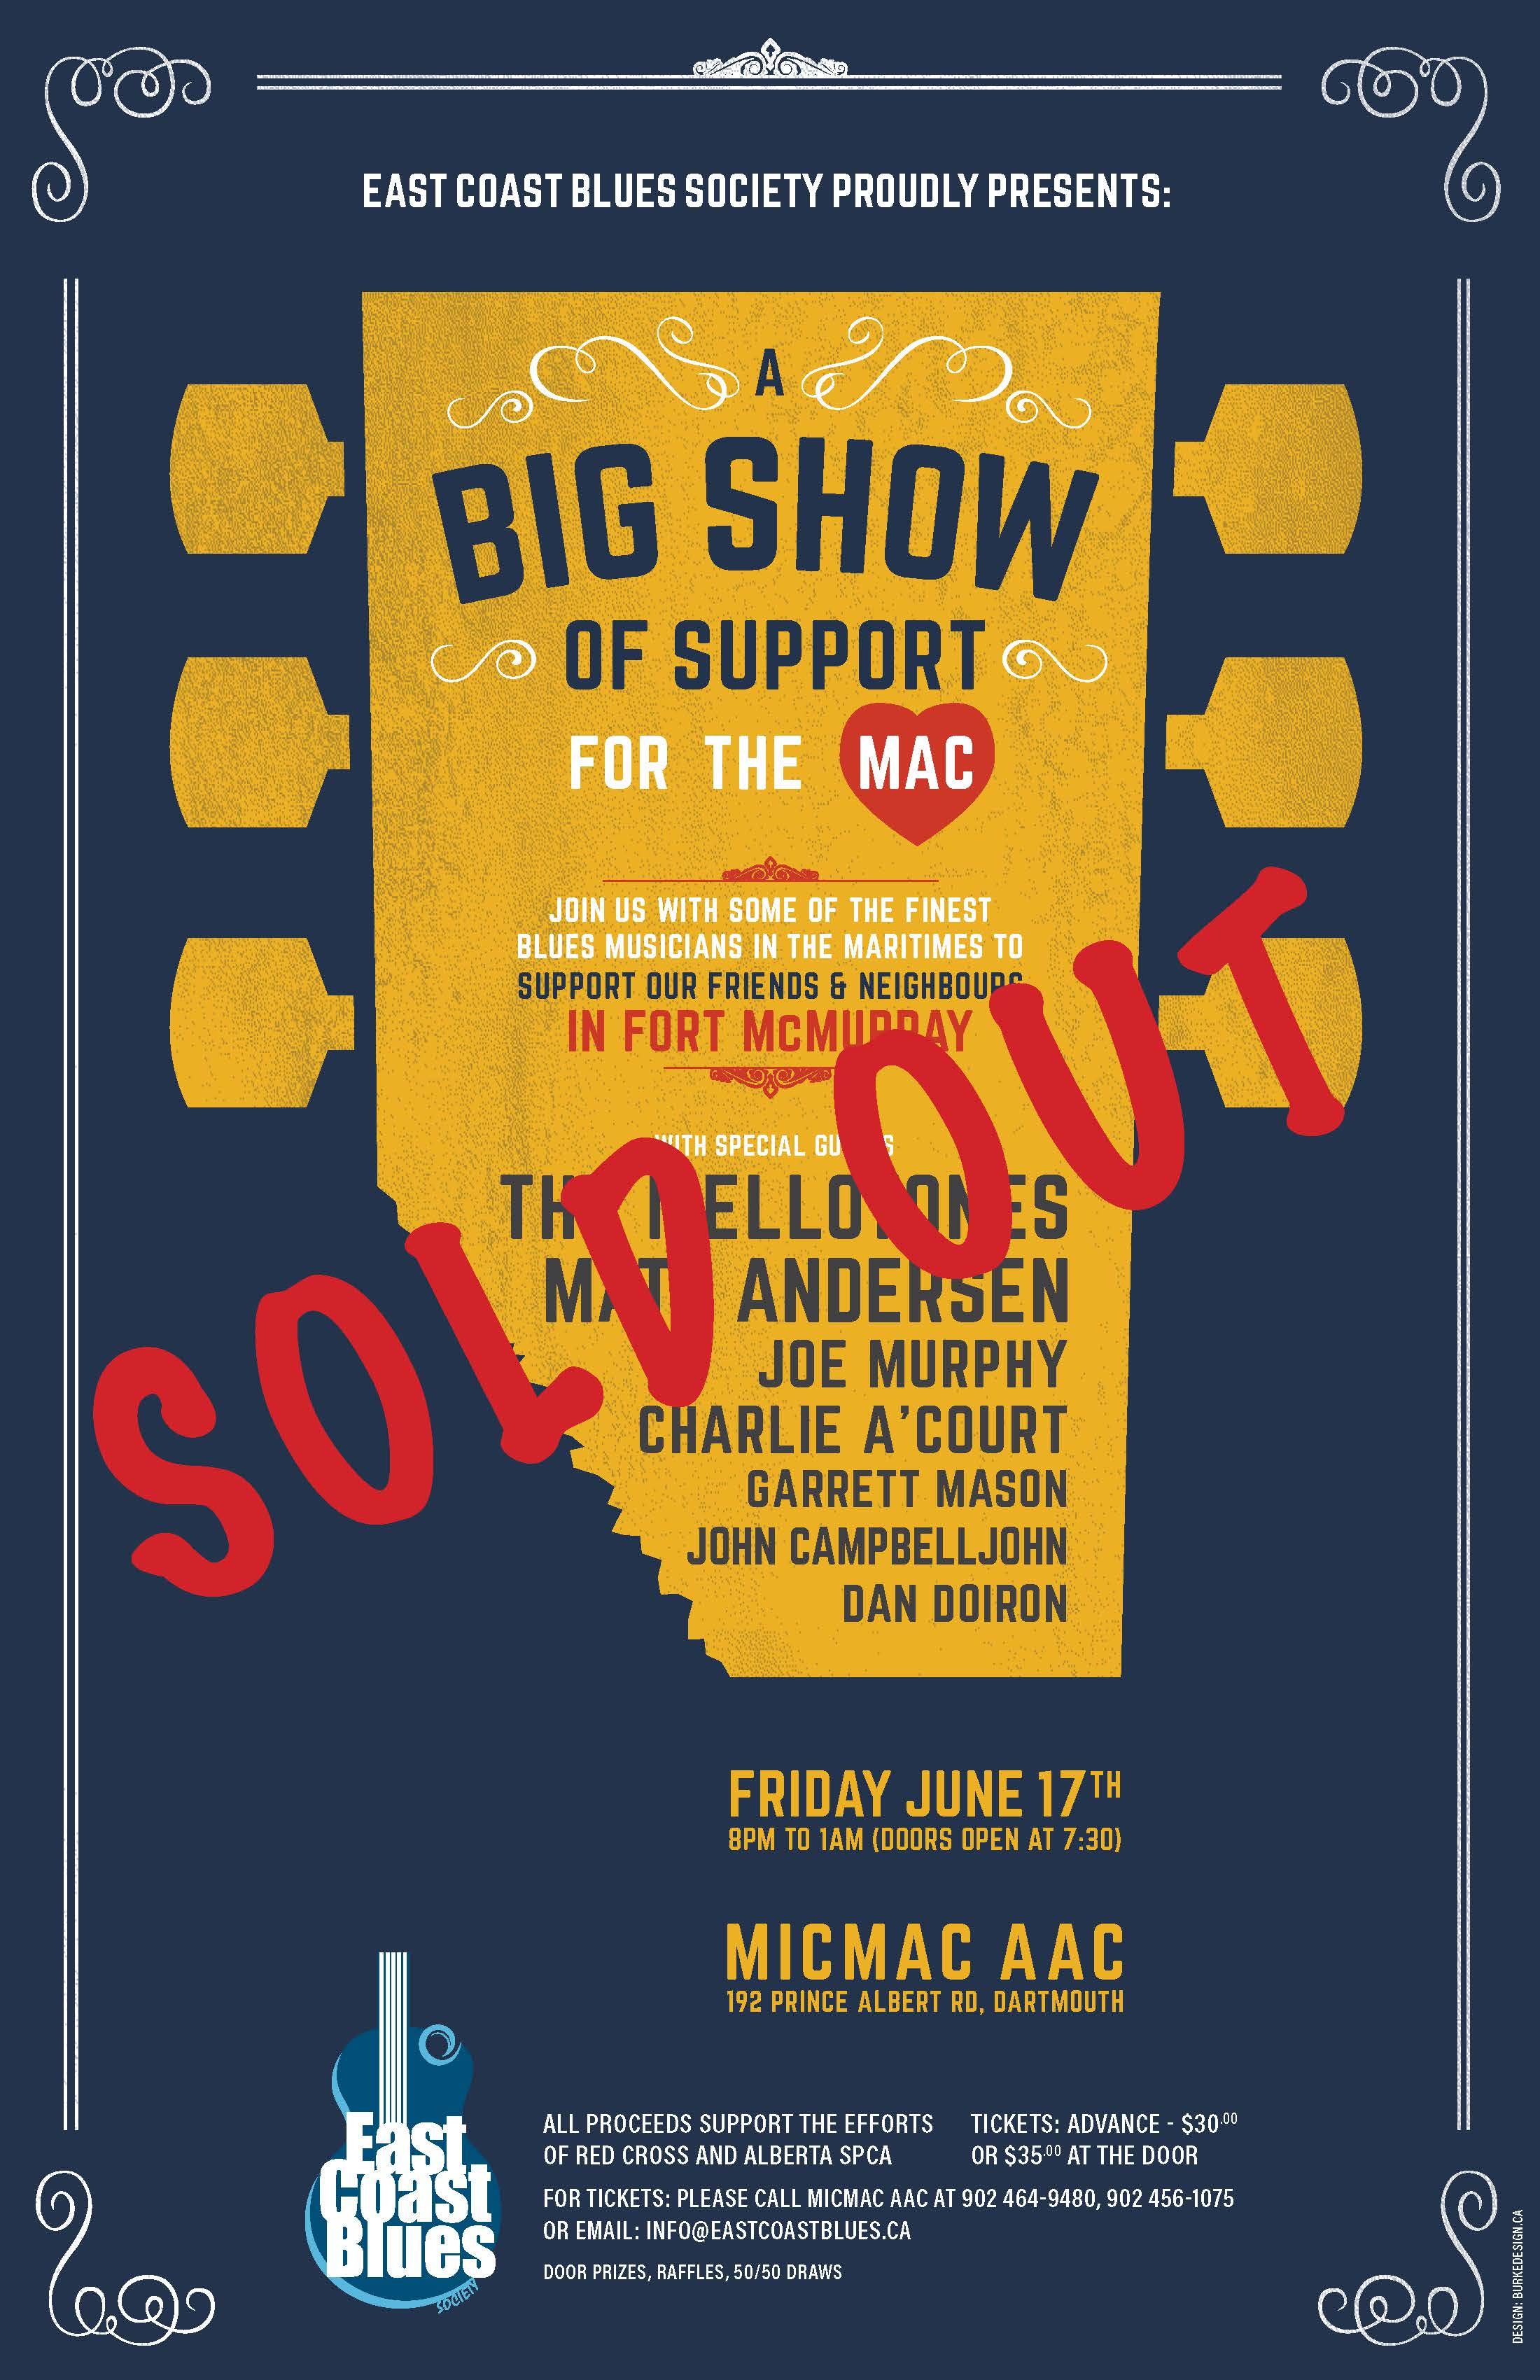 Benefit for Ft McMurray is sold out.